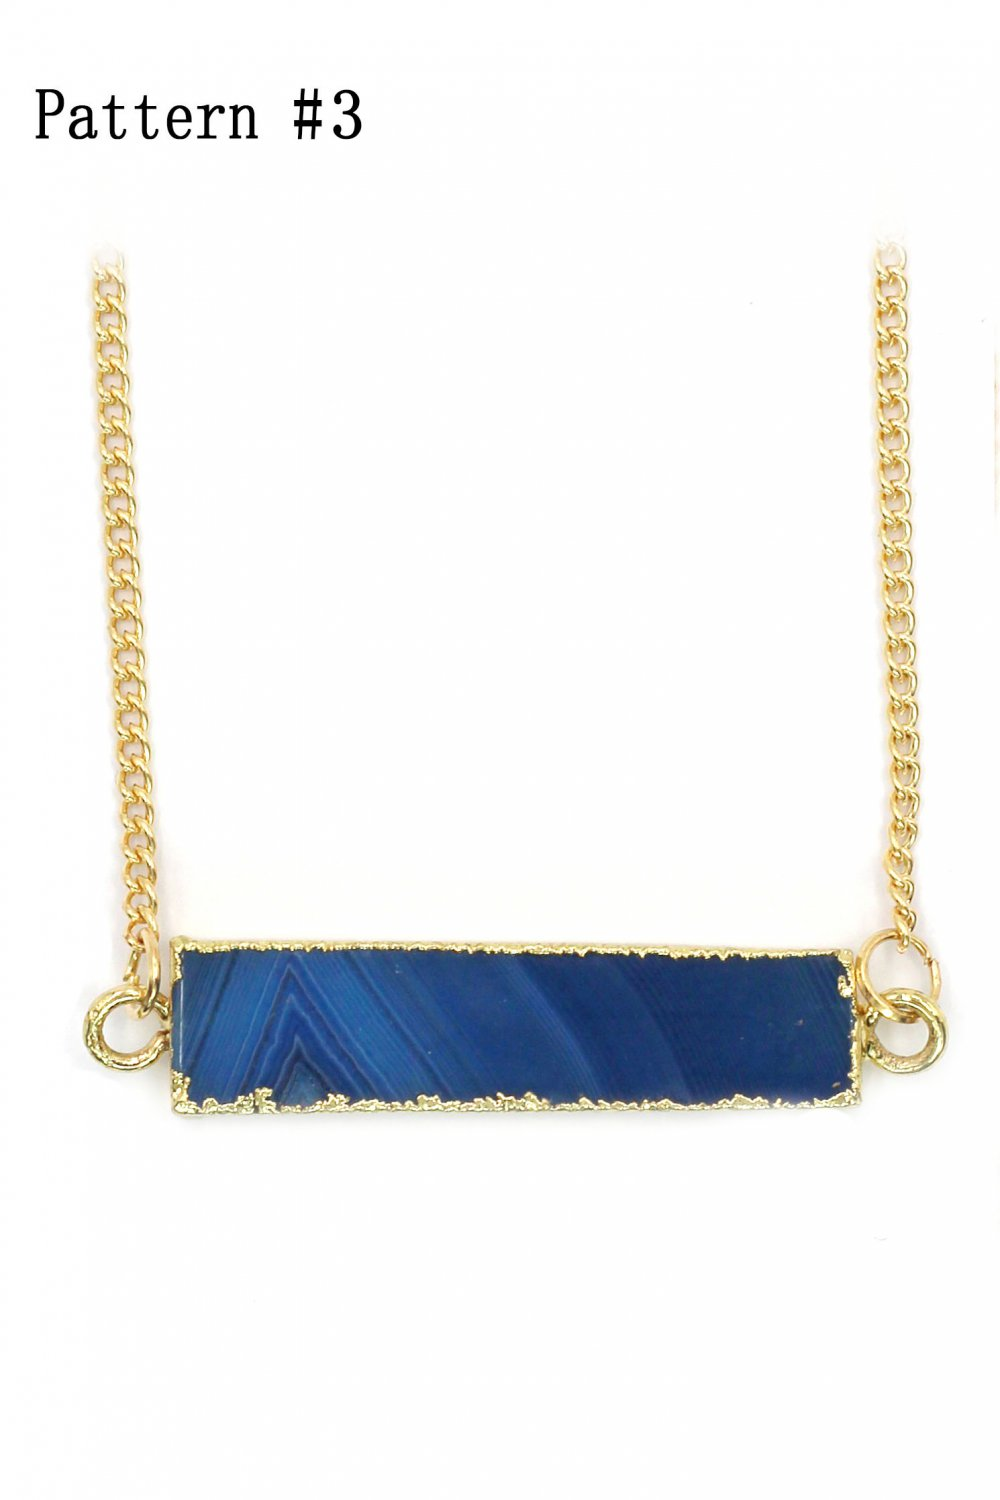 Fashion natural stone golden necklace Pattern #3